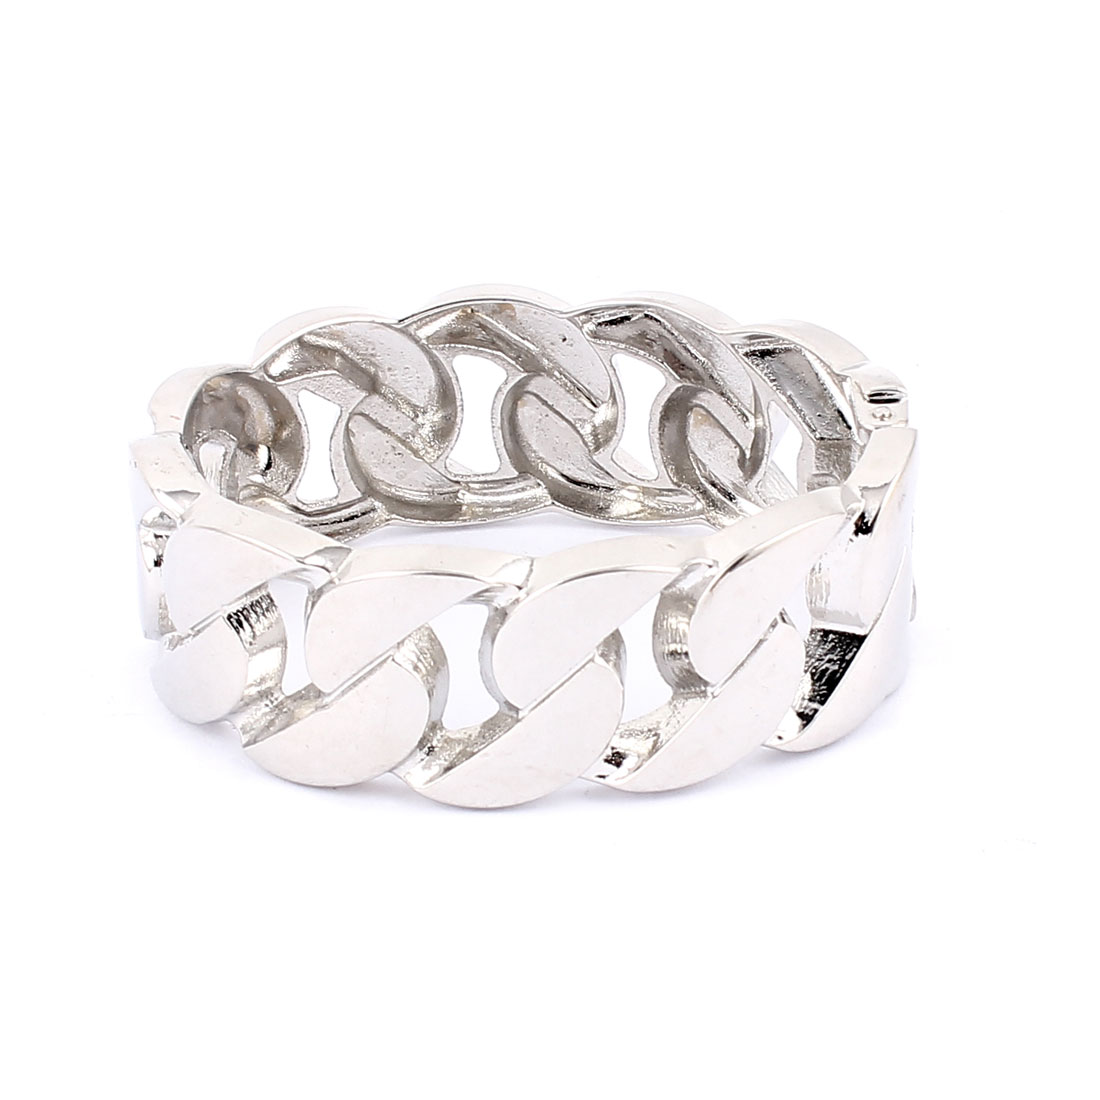 Silver Tone Metal Spring Loaded Oval Shape Wide Cuff Wrist Decoration Bracelet Bangle for Lady Women